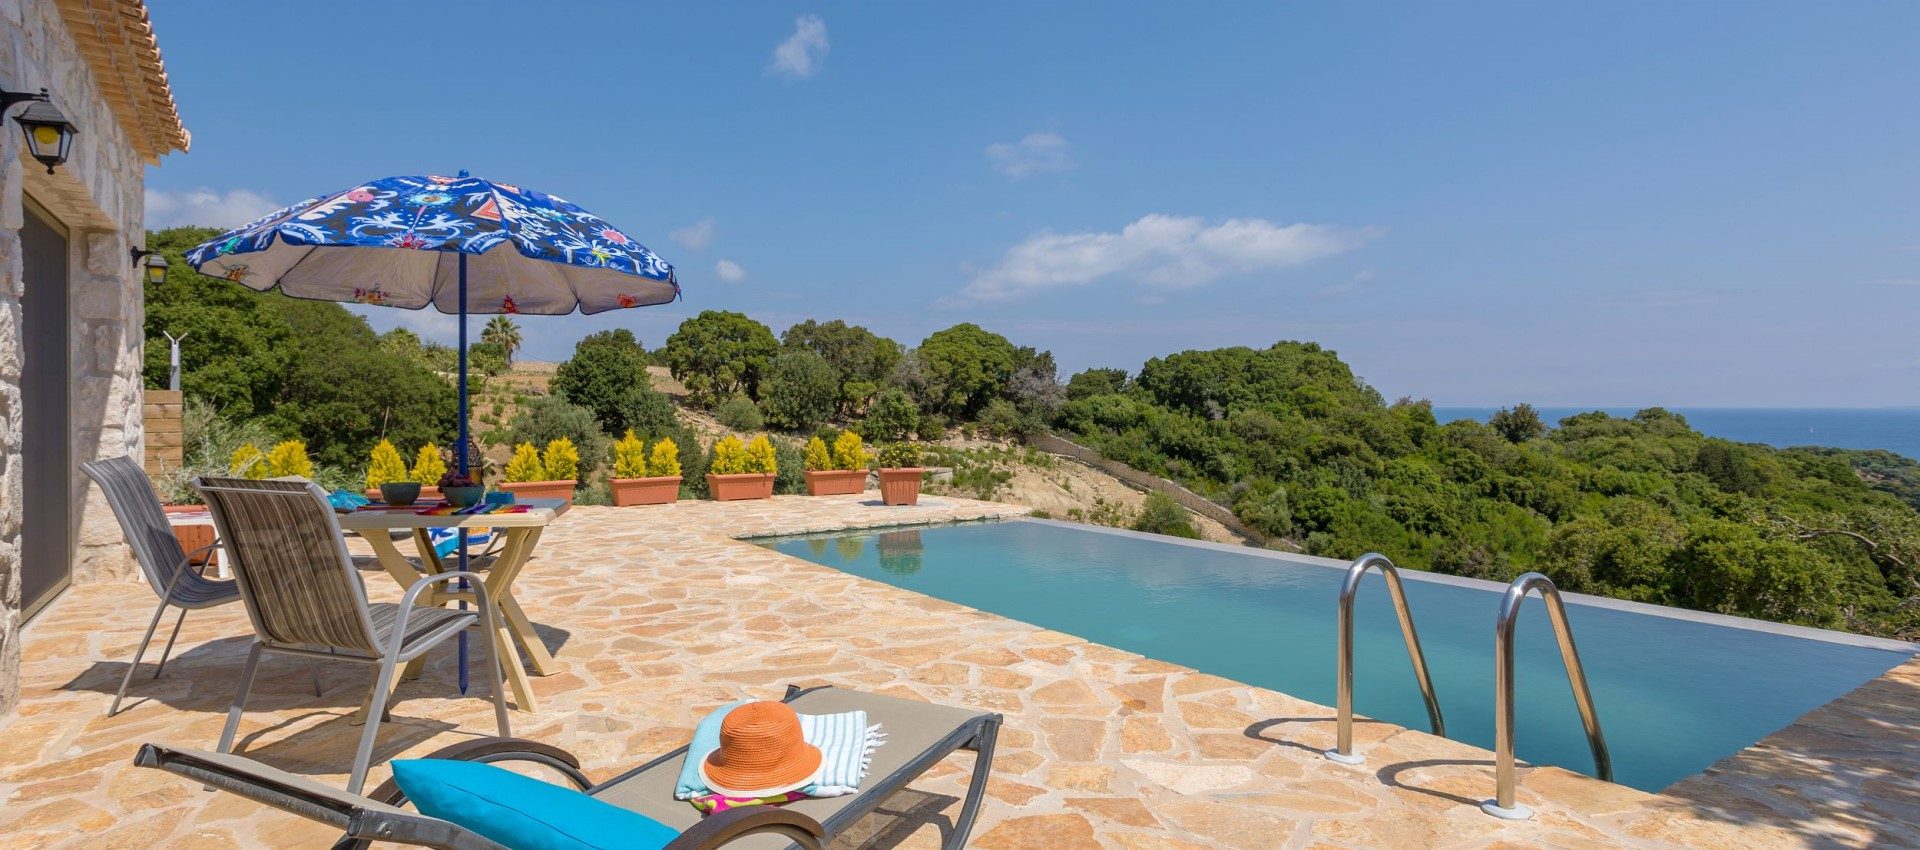 David`s Villas Vassilikos